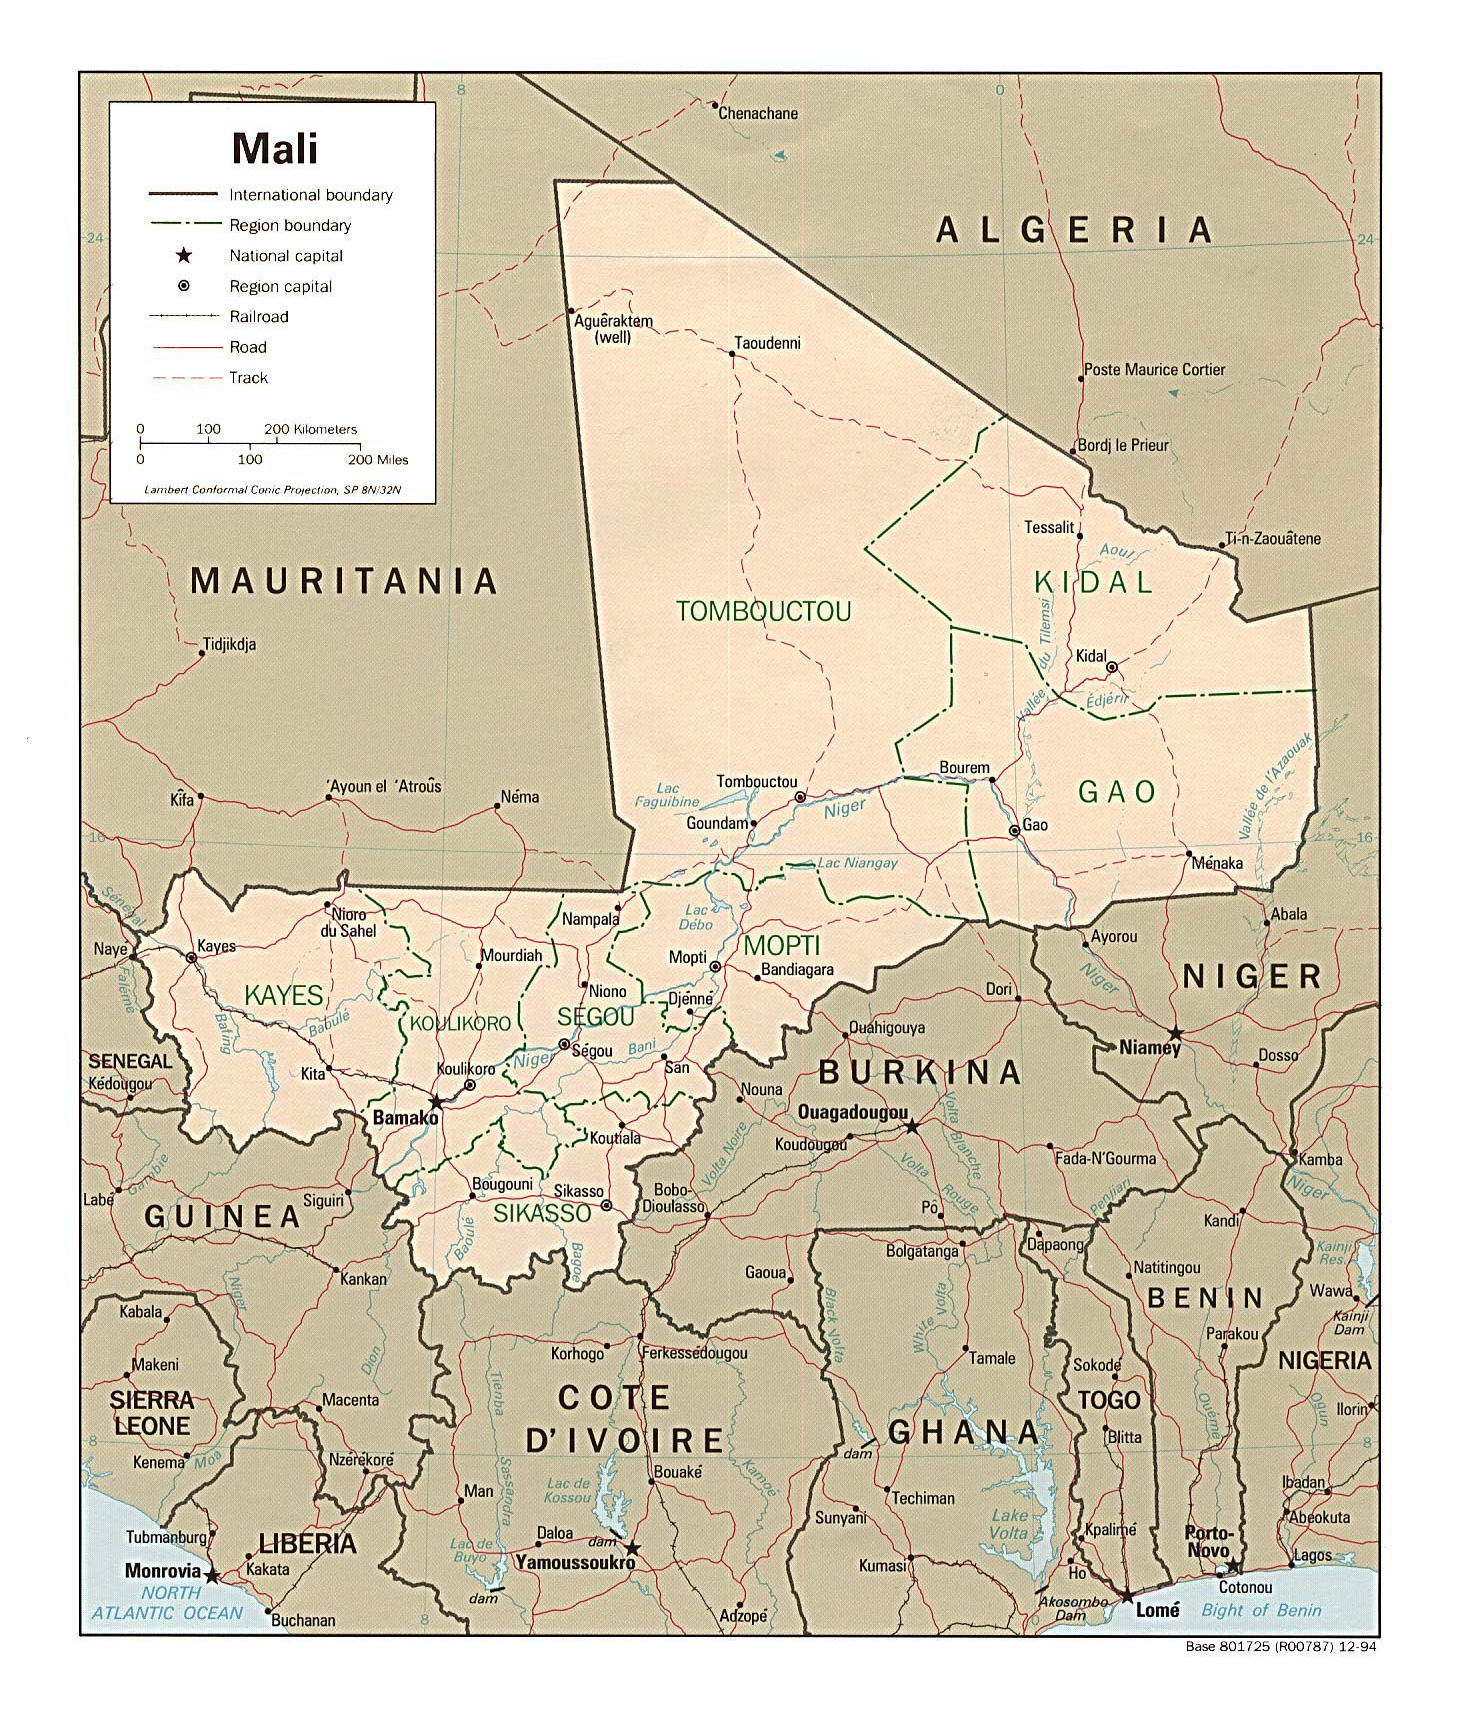 Detailed administrative and political map of Mali with all roads and